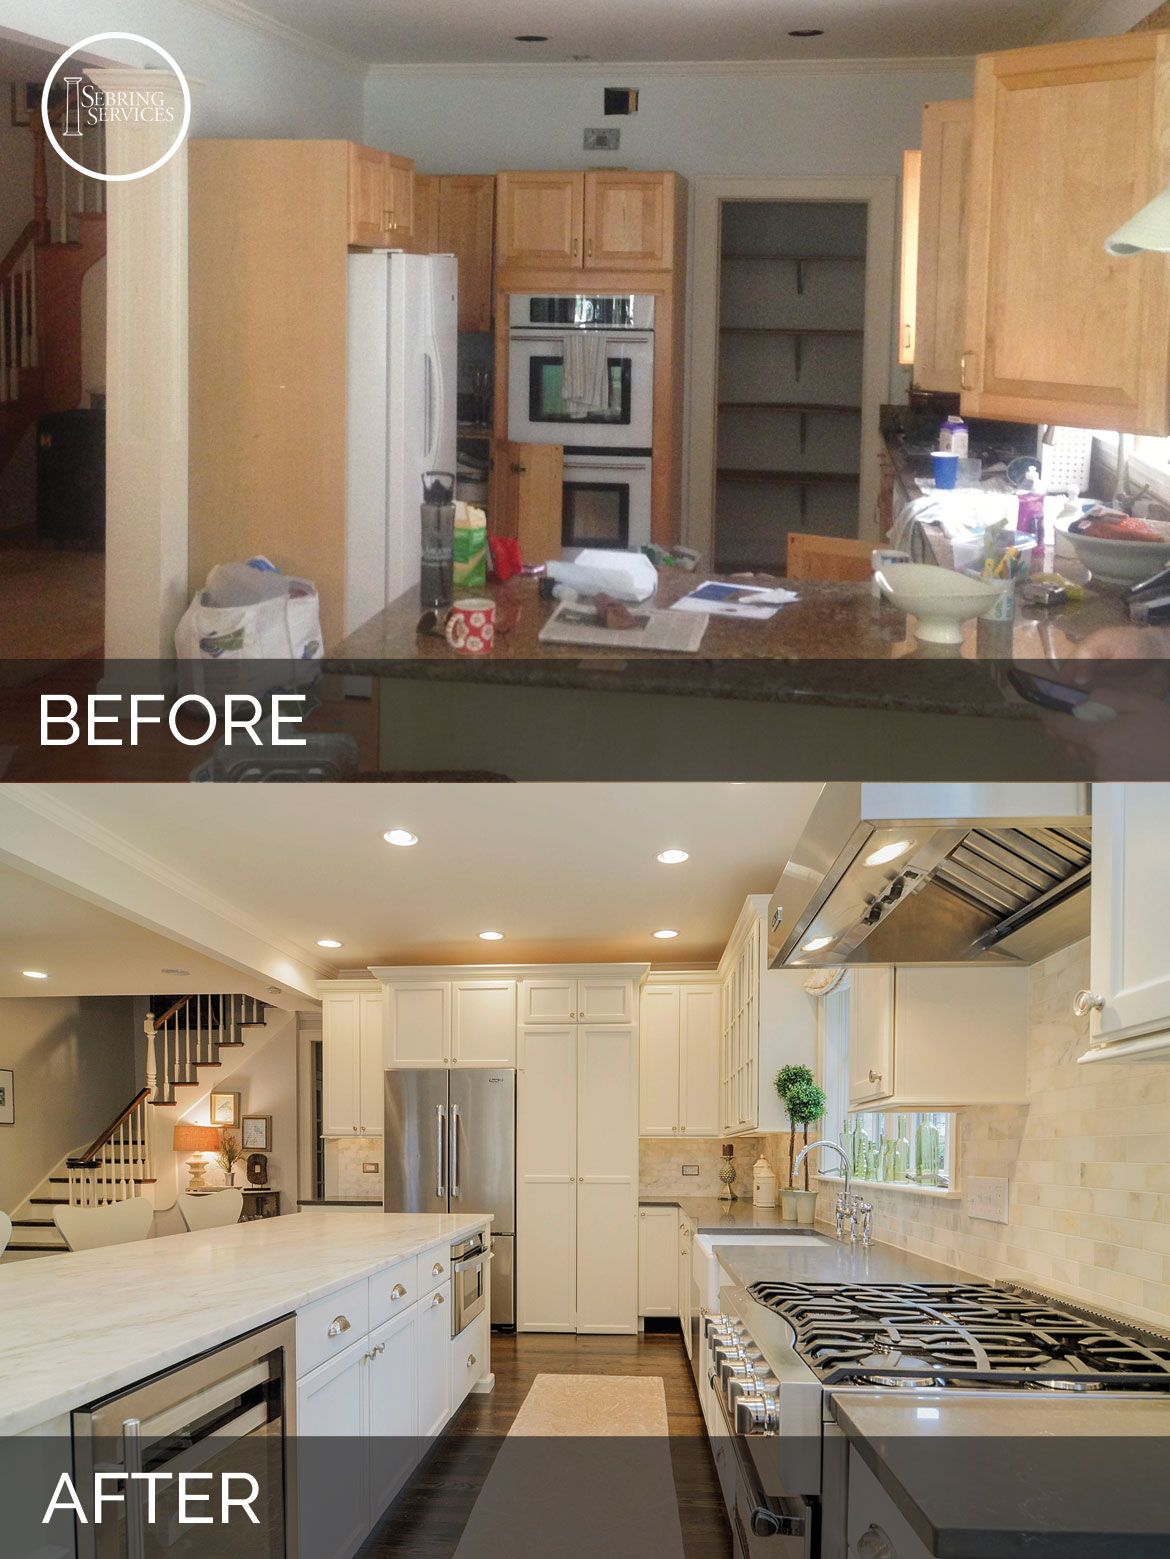 Ben ellen 39 s kitchen before after pictures kitchens for Kitchen and remodeling